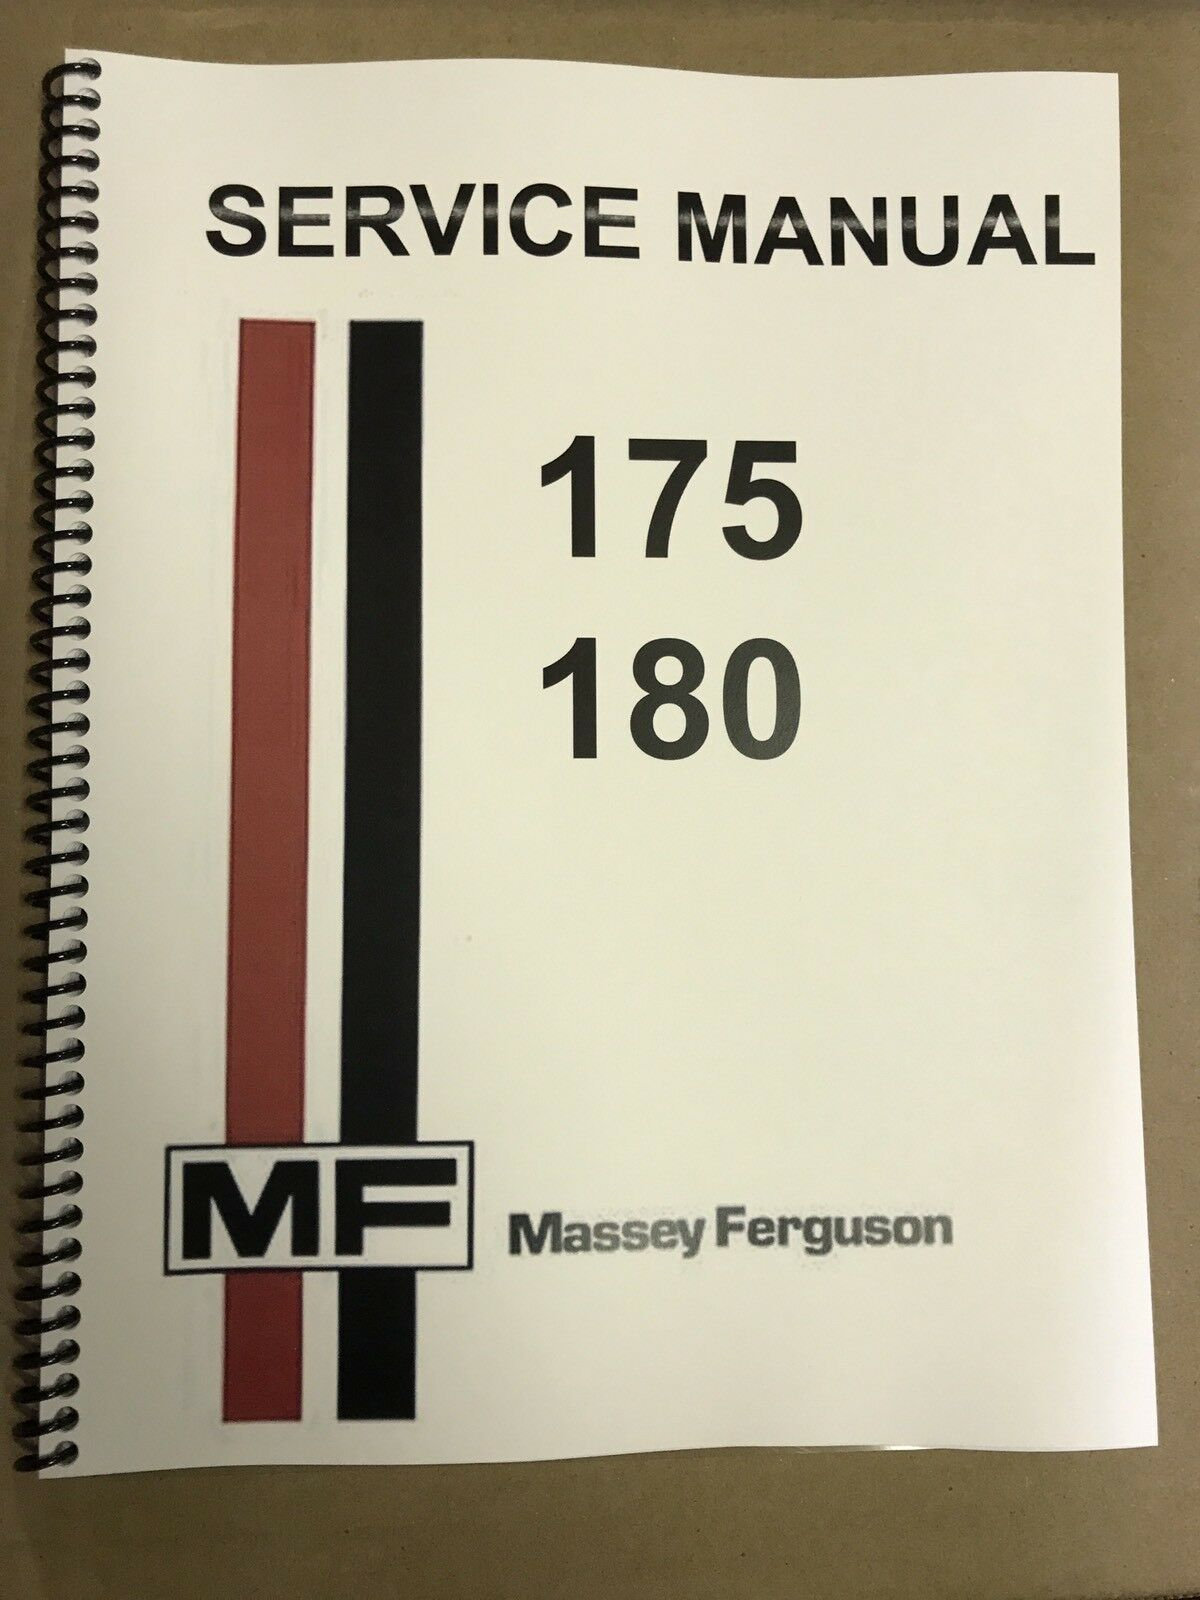 massey ferguson mf175 mf 175 tractor workshop service shop manual ebay rh ebay com MF 175 Parts massey ferguson 175 repair manual